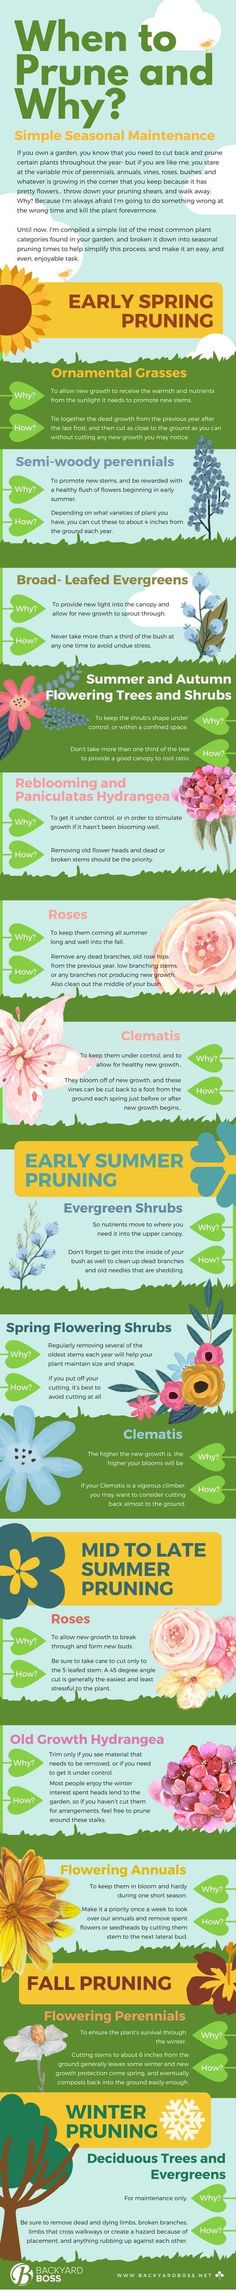 Organic Gardening Tips For Every Season Of The Year ⋆ Harvest Excitement Garden Shrubs, Lawn And Garden, Garden Plants, Pruning Plants, Organic Gardening, Gardening Tips, Container Gardening, Vegetable Gardening, Garden Projects